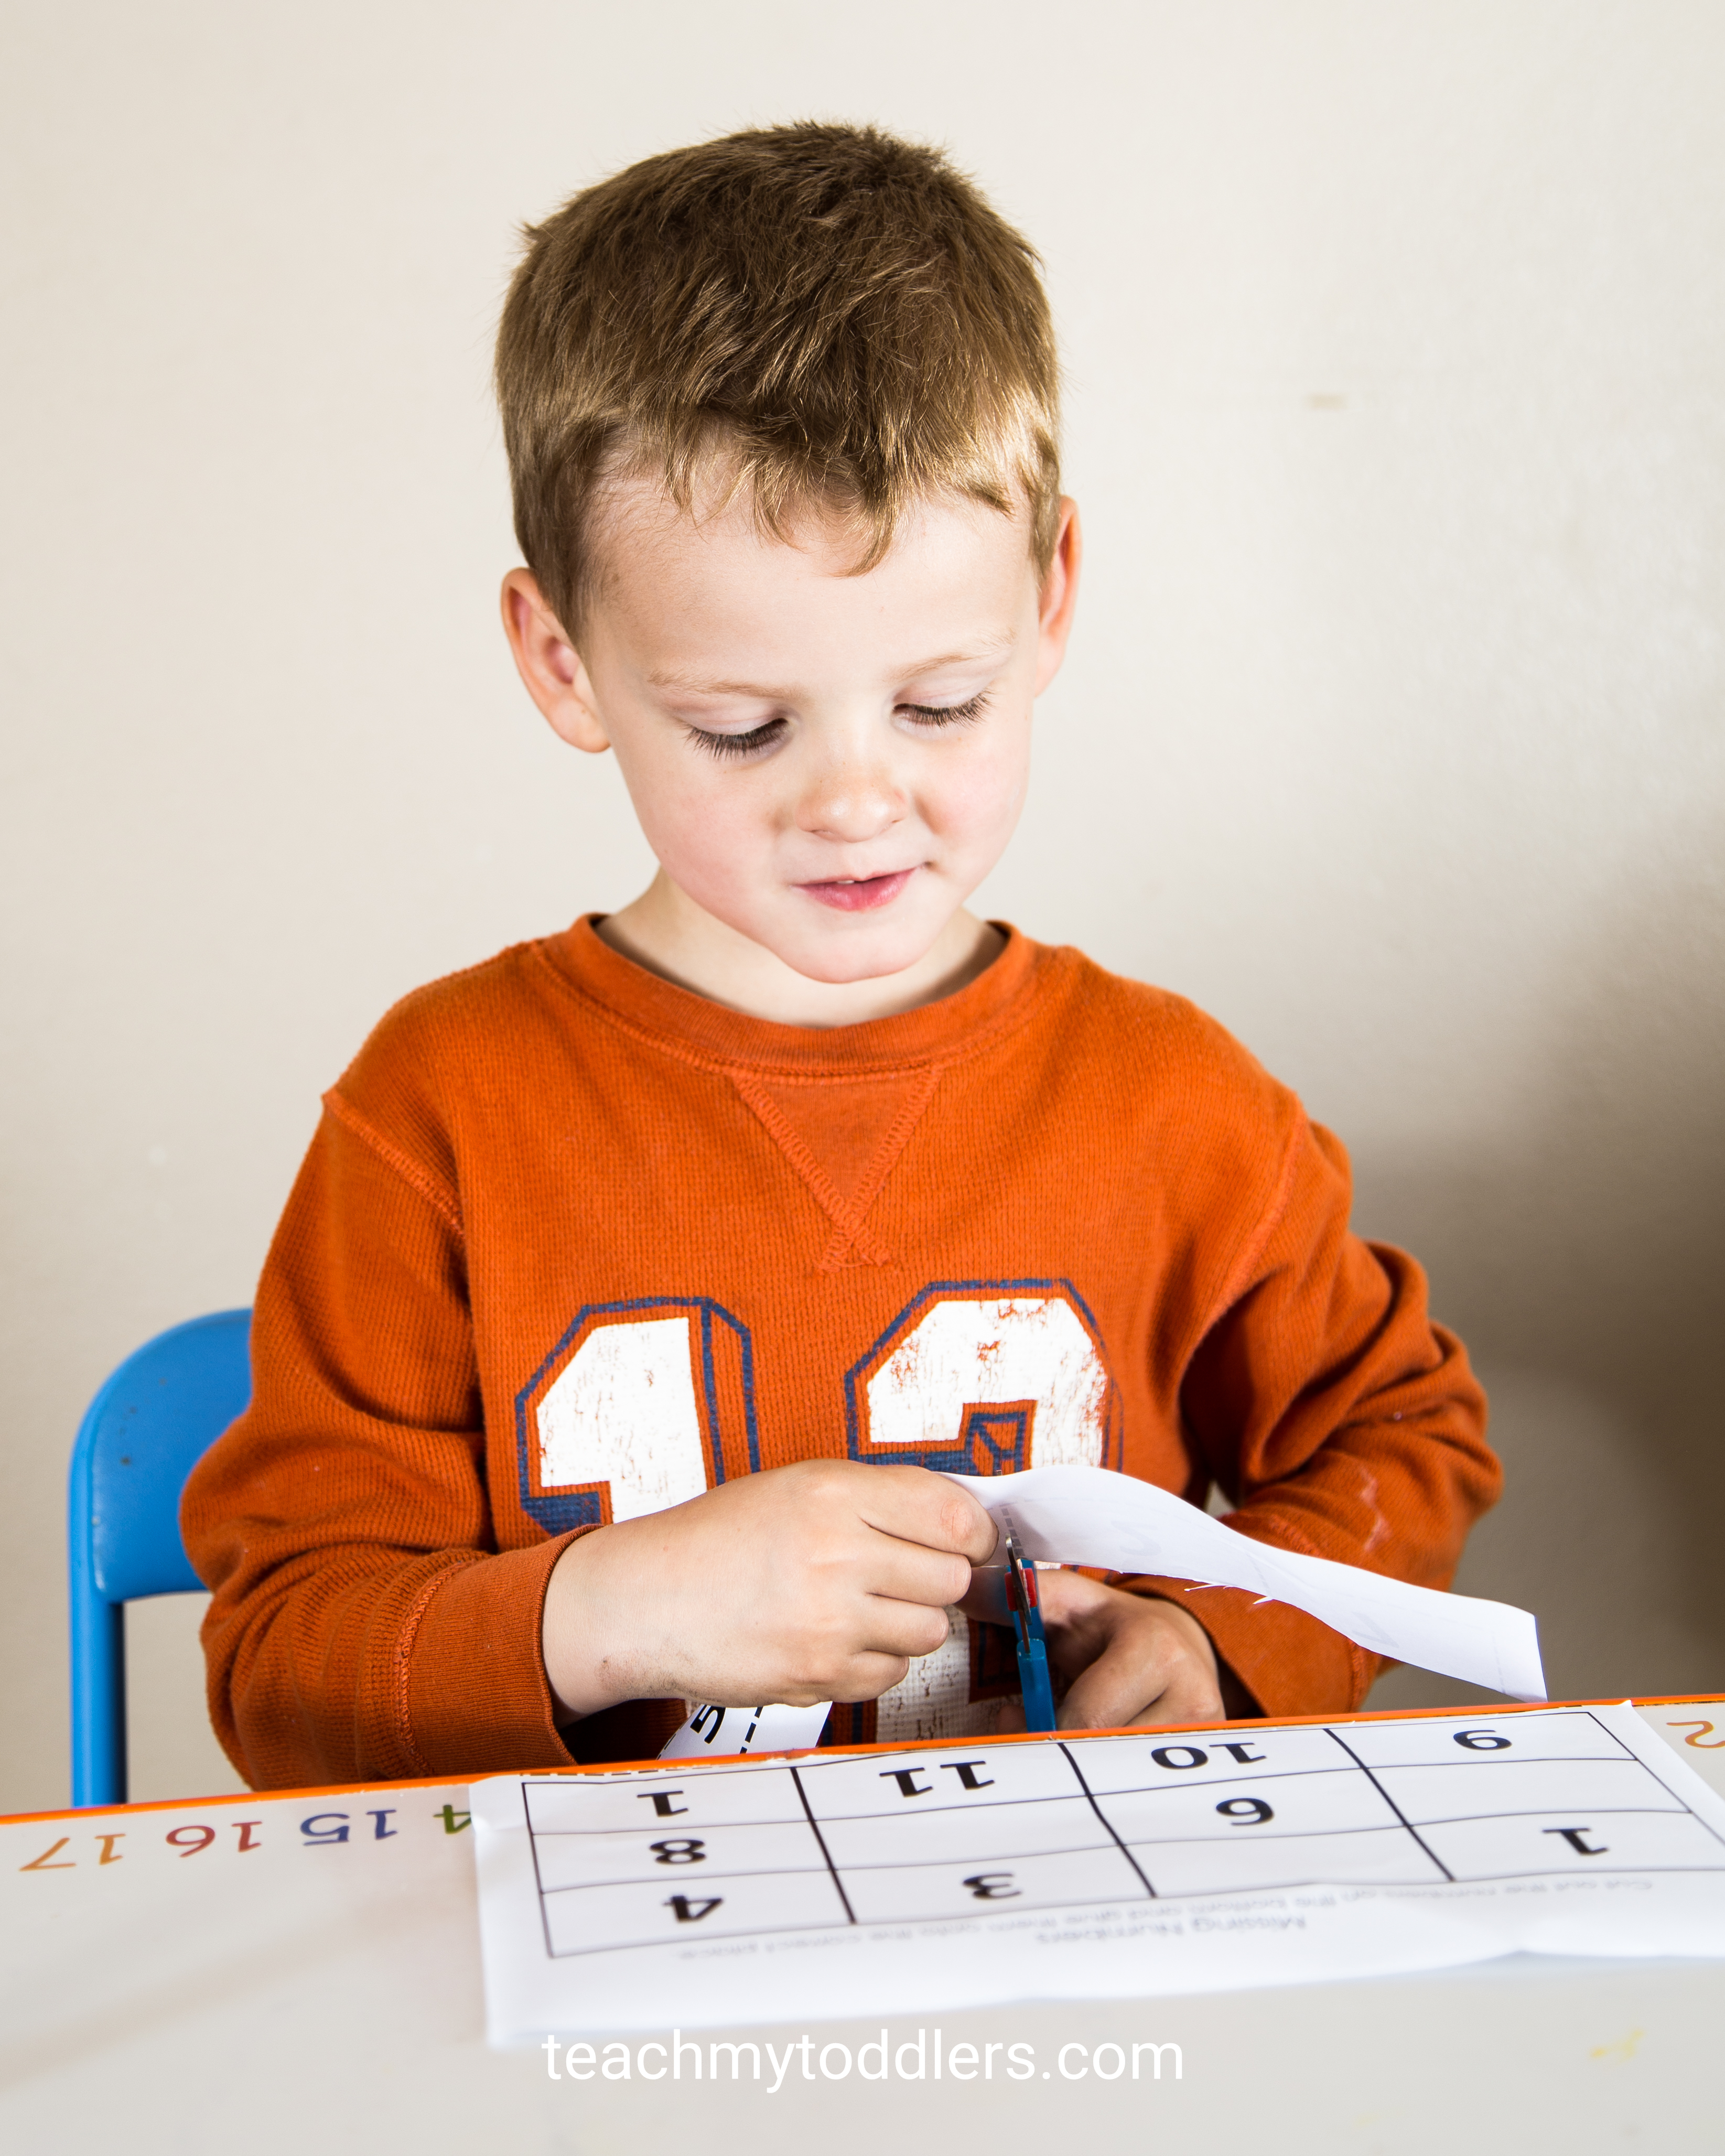 Discover how to use this missing numbers activity to teach preschoolers numbers